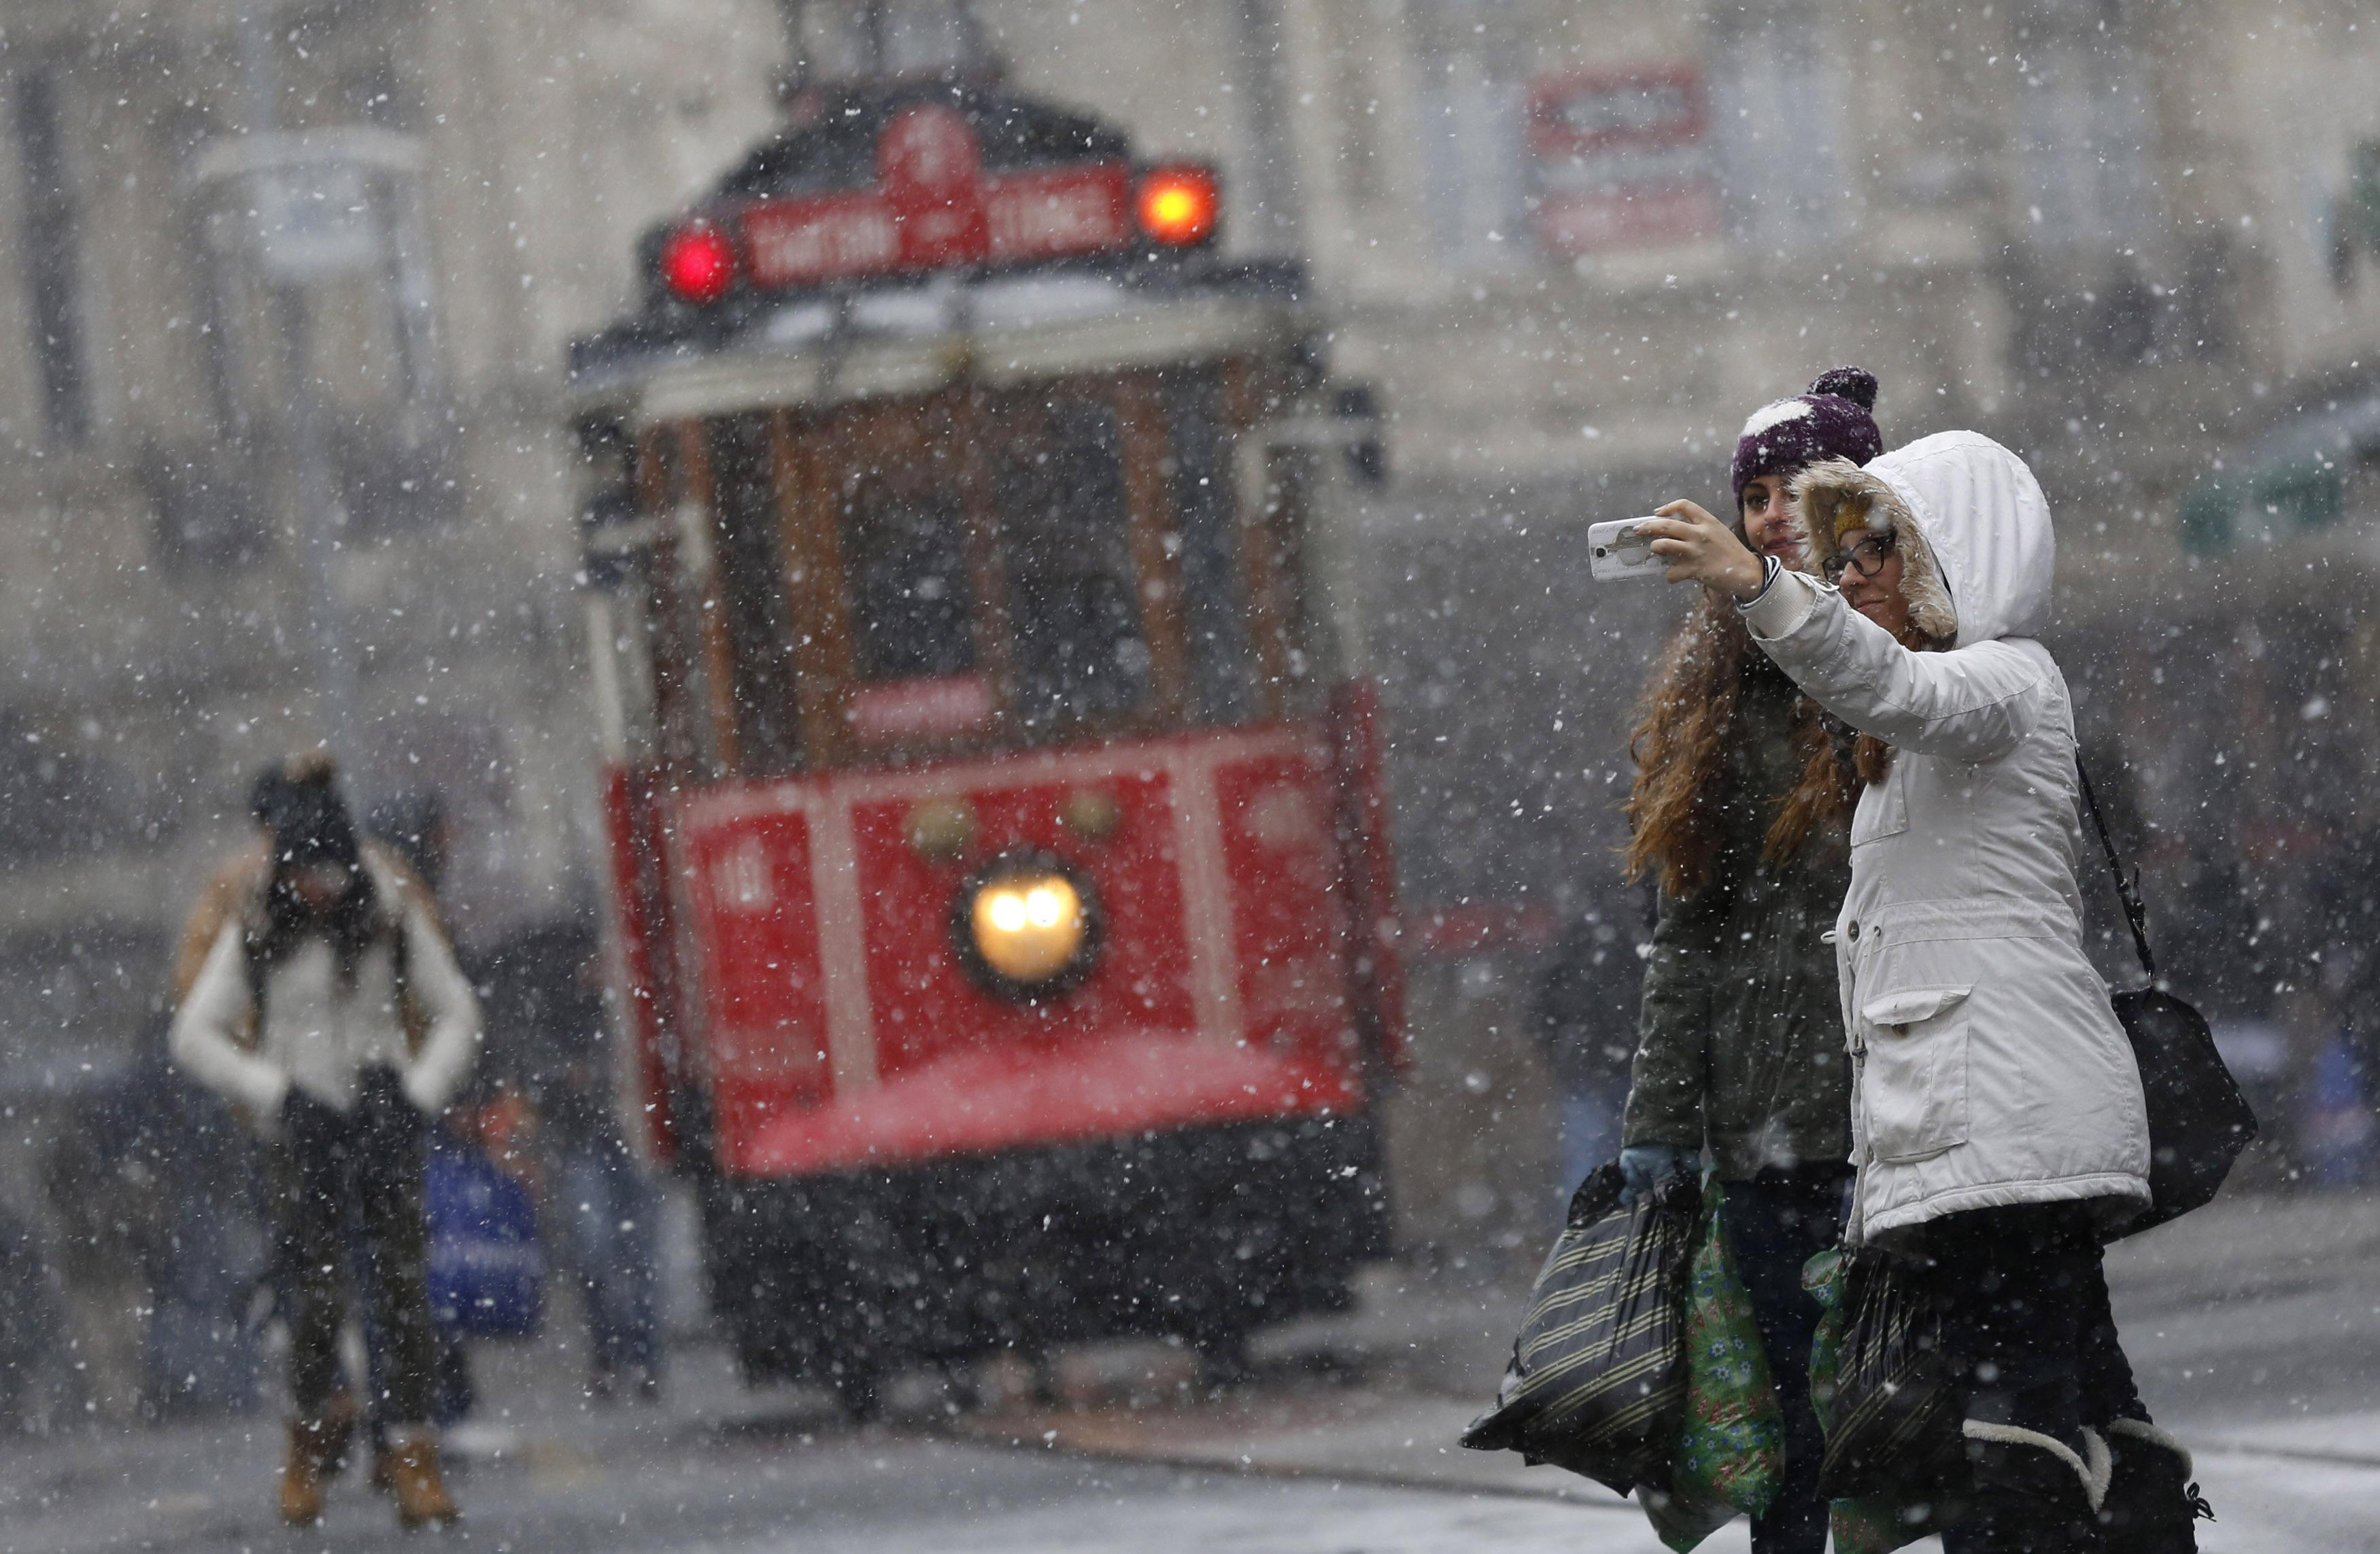 "Pedestrians, with a vintage tram in the background, take a ""selfie"" as snow falls at the main shopping street of Istiklal in central Istanbul, in this January 6, 2015 file photo. REUTERS/Murad Sezer/Files (TURKEY - Tags: ENVIRONMENT SOCIETY) ATTENTION EDITORS - THIS PICTURE IS PART OF THE PACKAGE ""THE SELFIE PHENOMENON"". TO FIND ALL 19 IMAGES SEARCH 'SELFIE'"